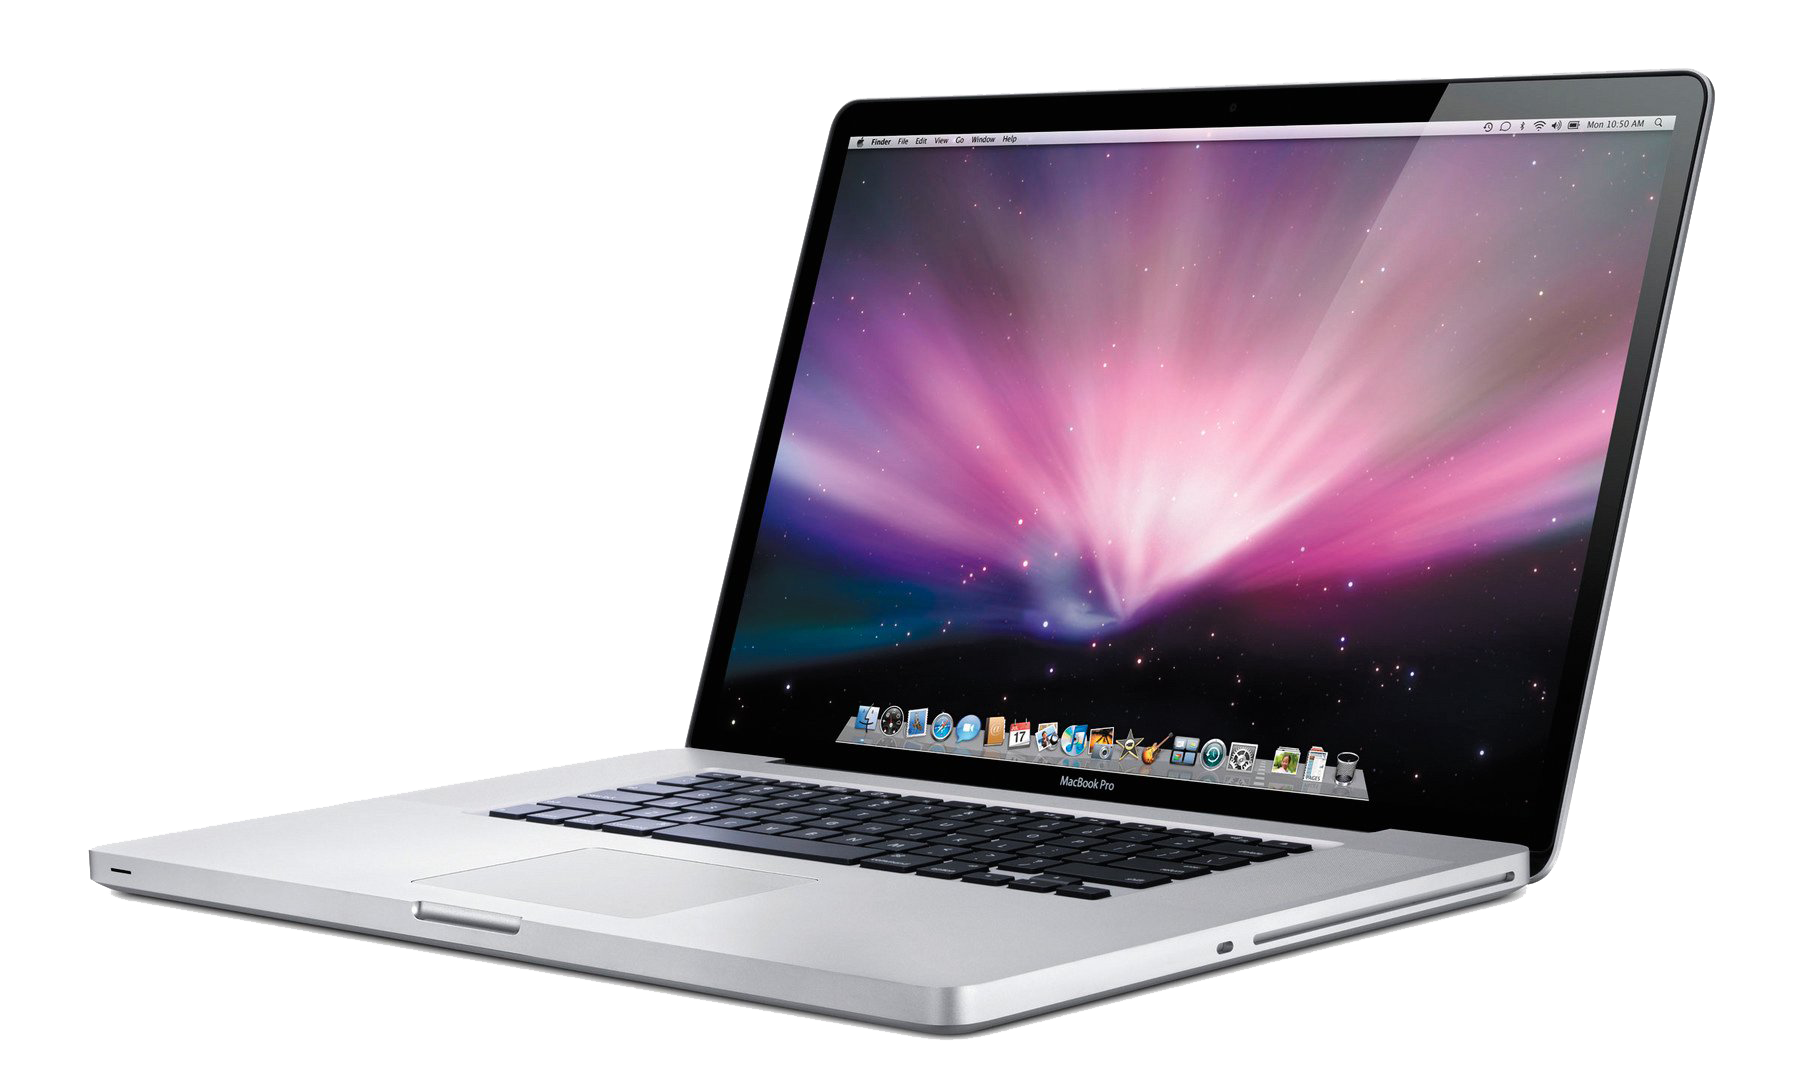 Macbook With Great Looks Background image #47619